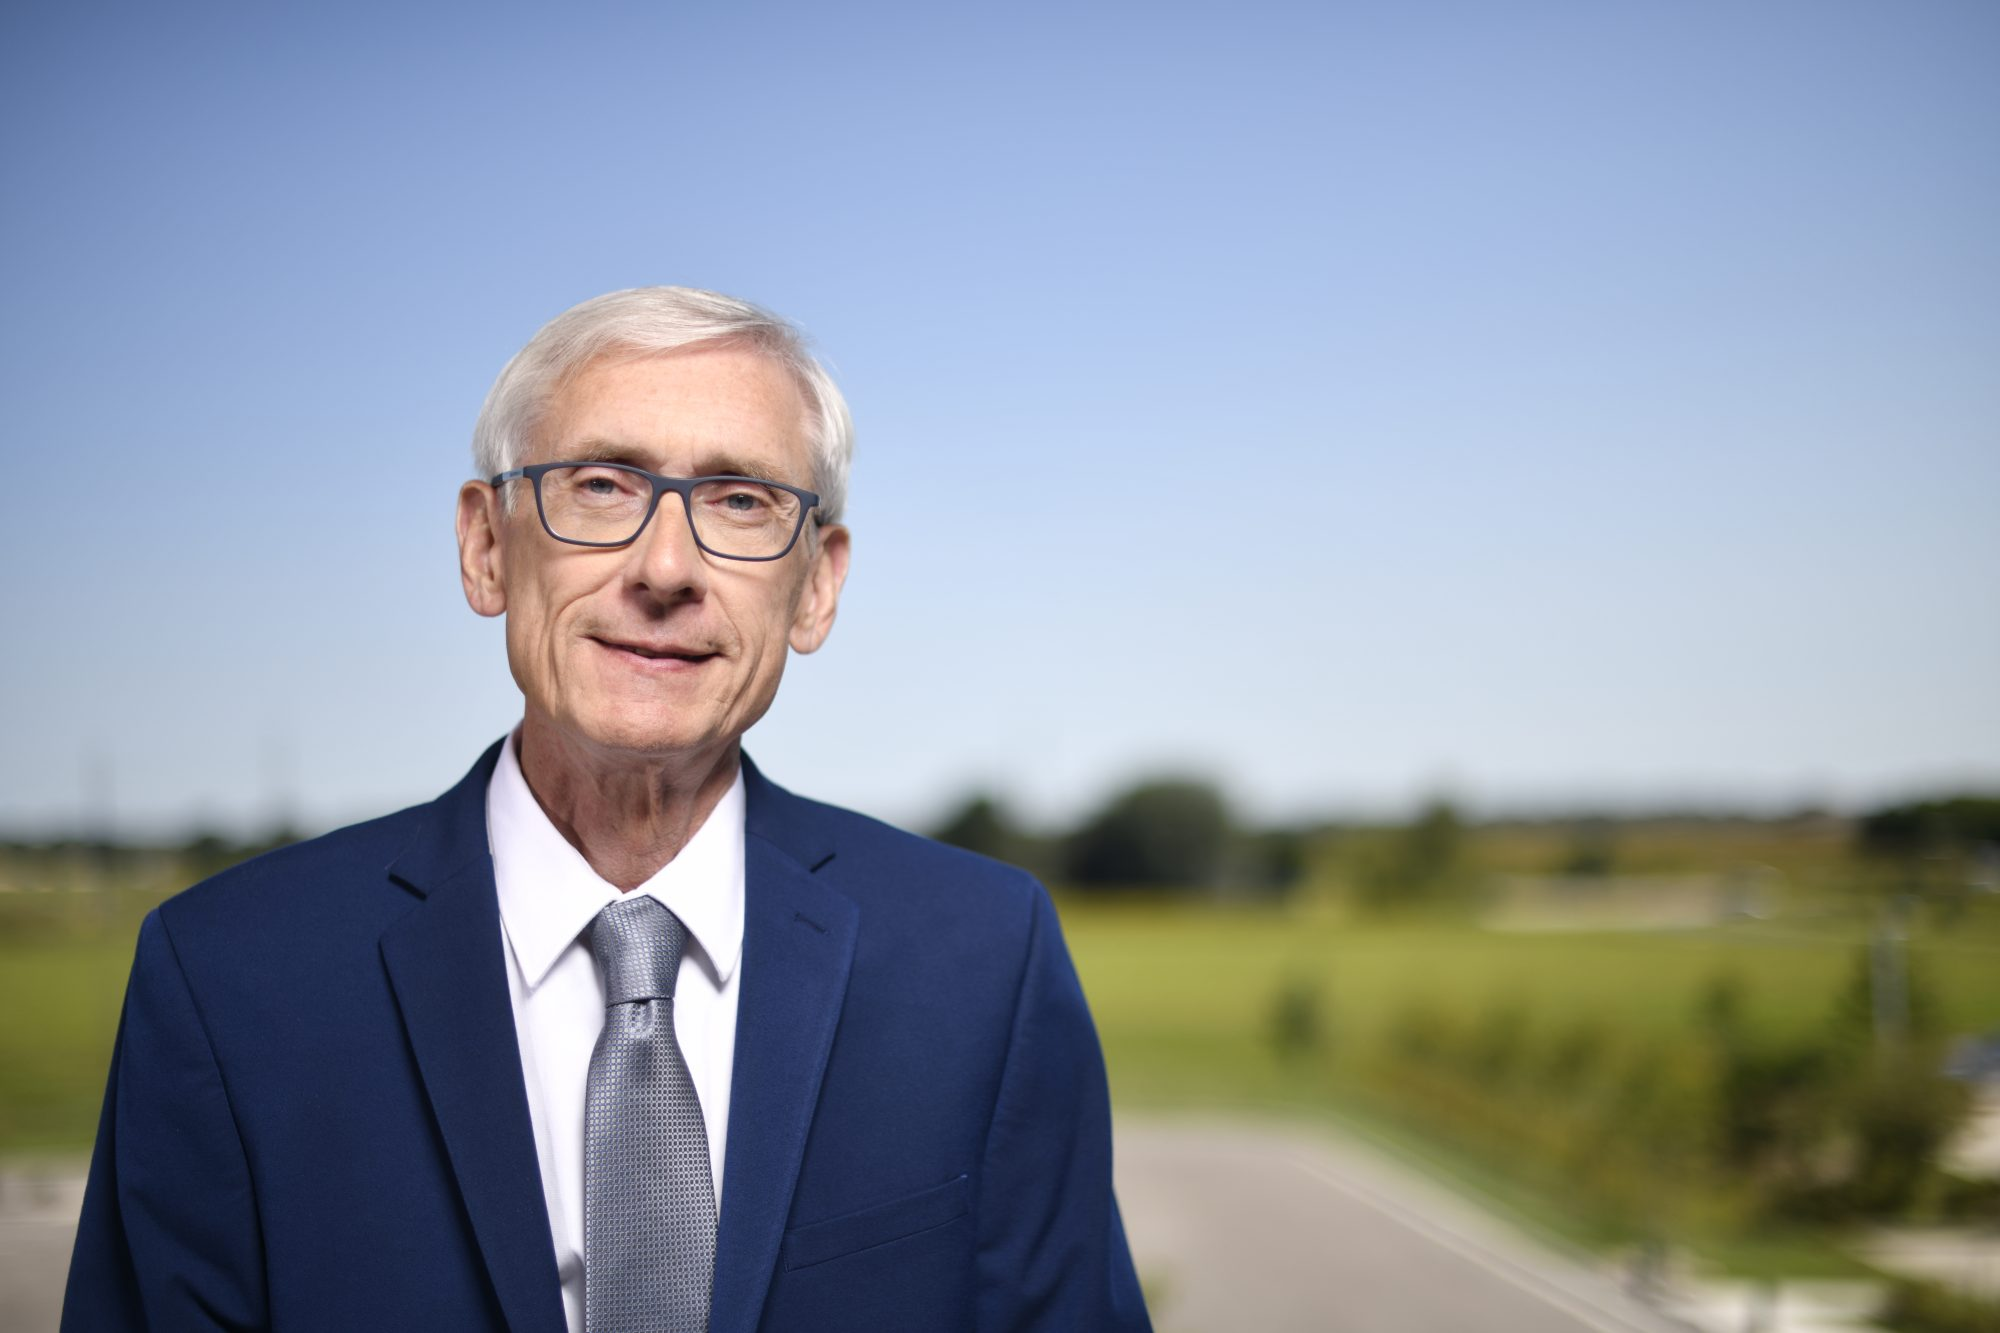 Gov. Evers Announces New Public Health Emergency Due to Overwhelmed Wisconsin Hospitals, Issues New Face Coverings Order